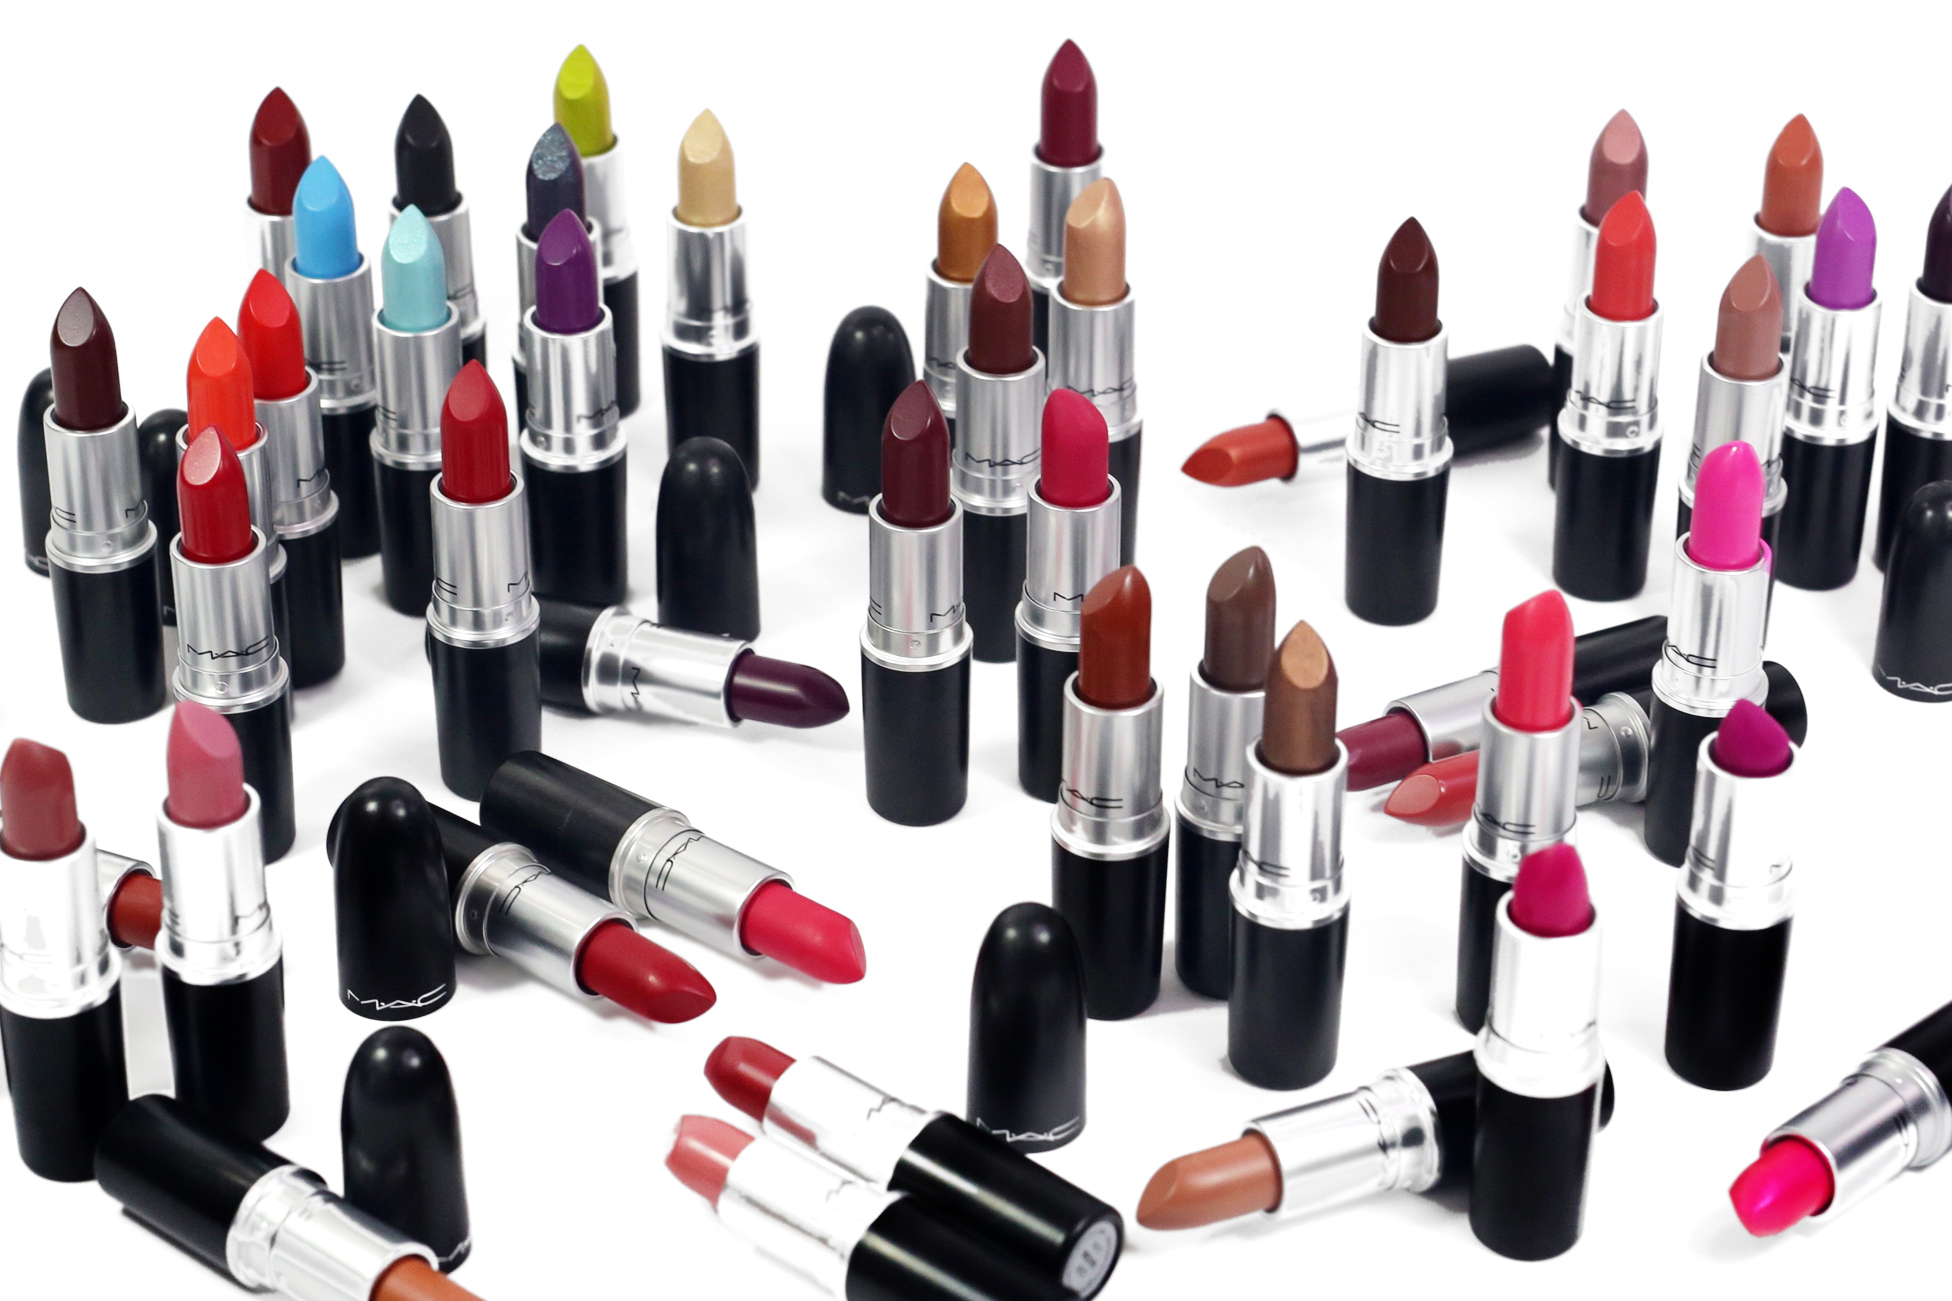 MAC's most iconic lipsticks - LIPSICK.ME - a lipstick beauty blog_2473.jpg